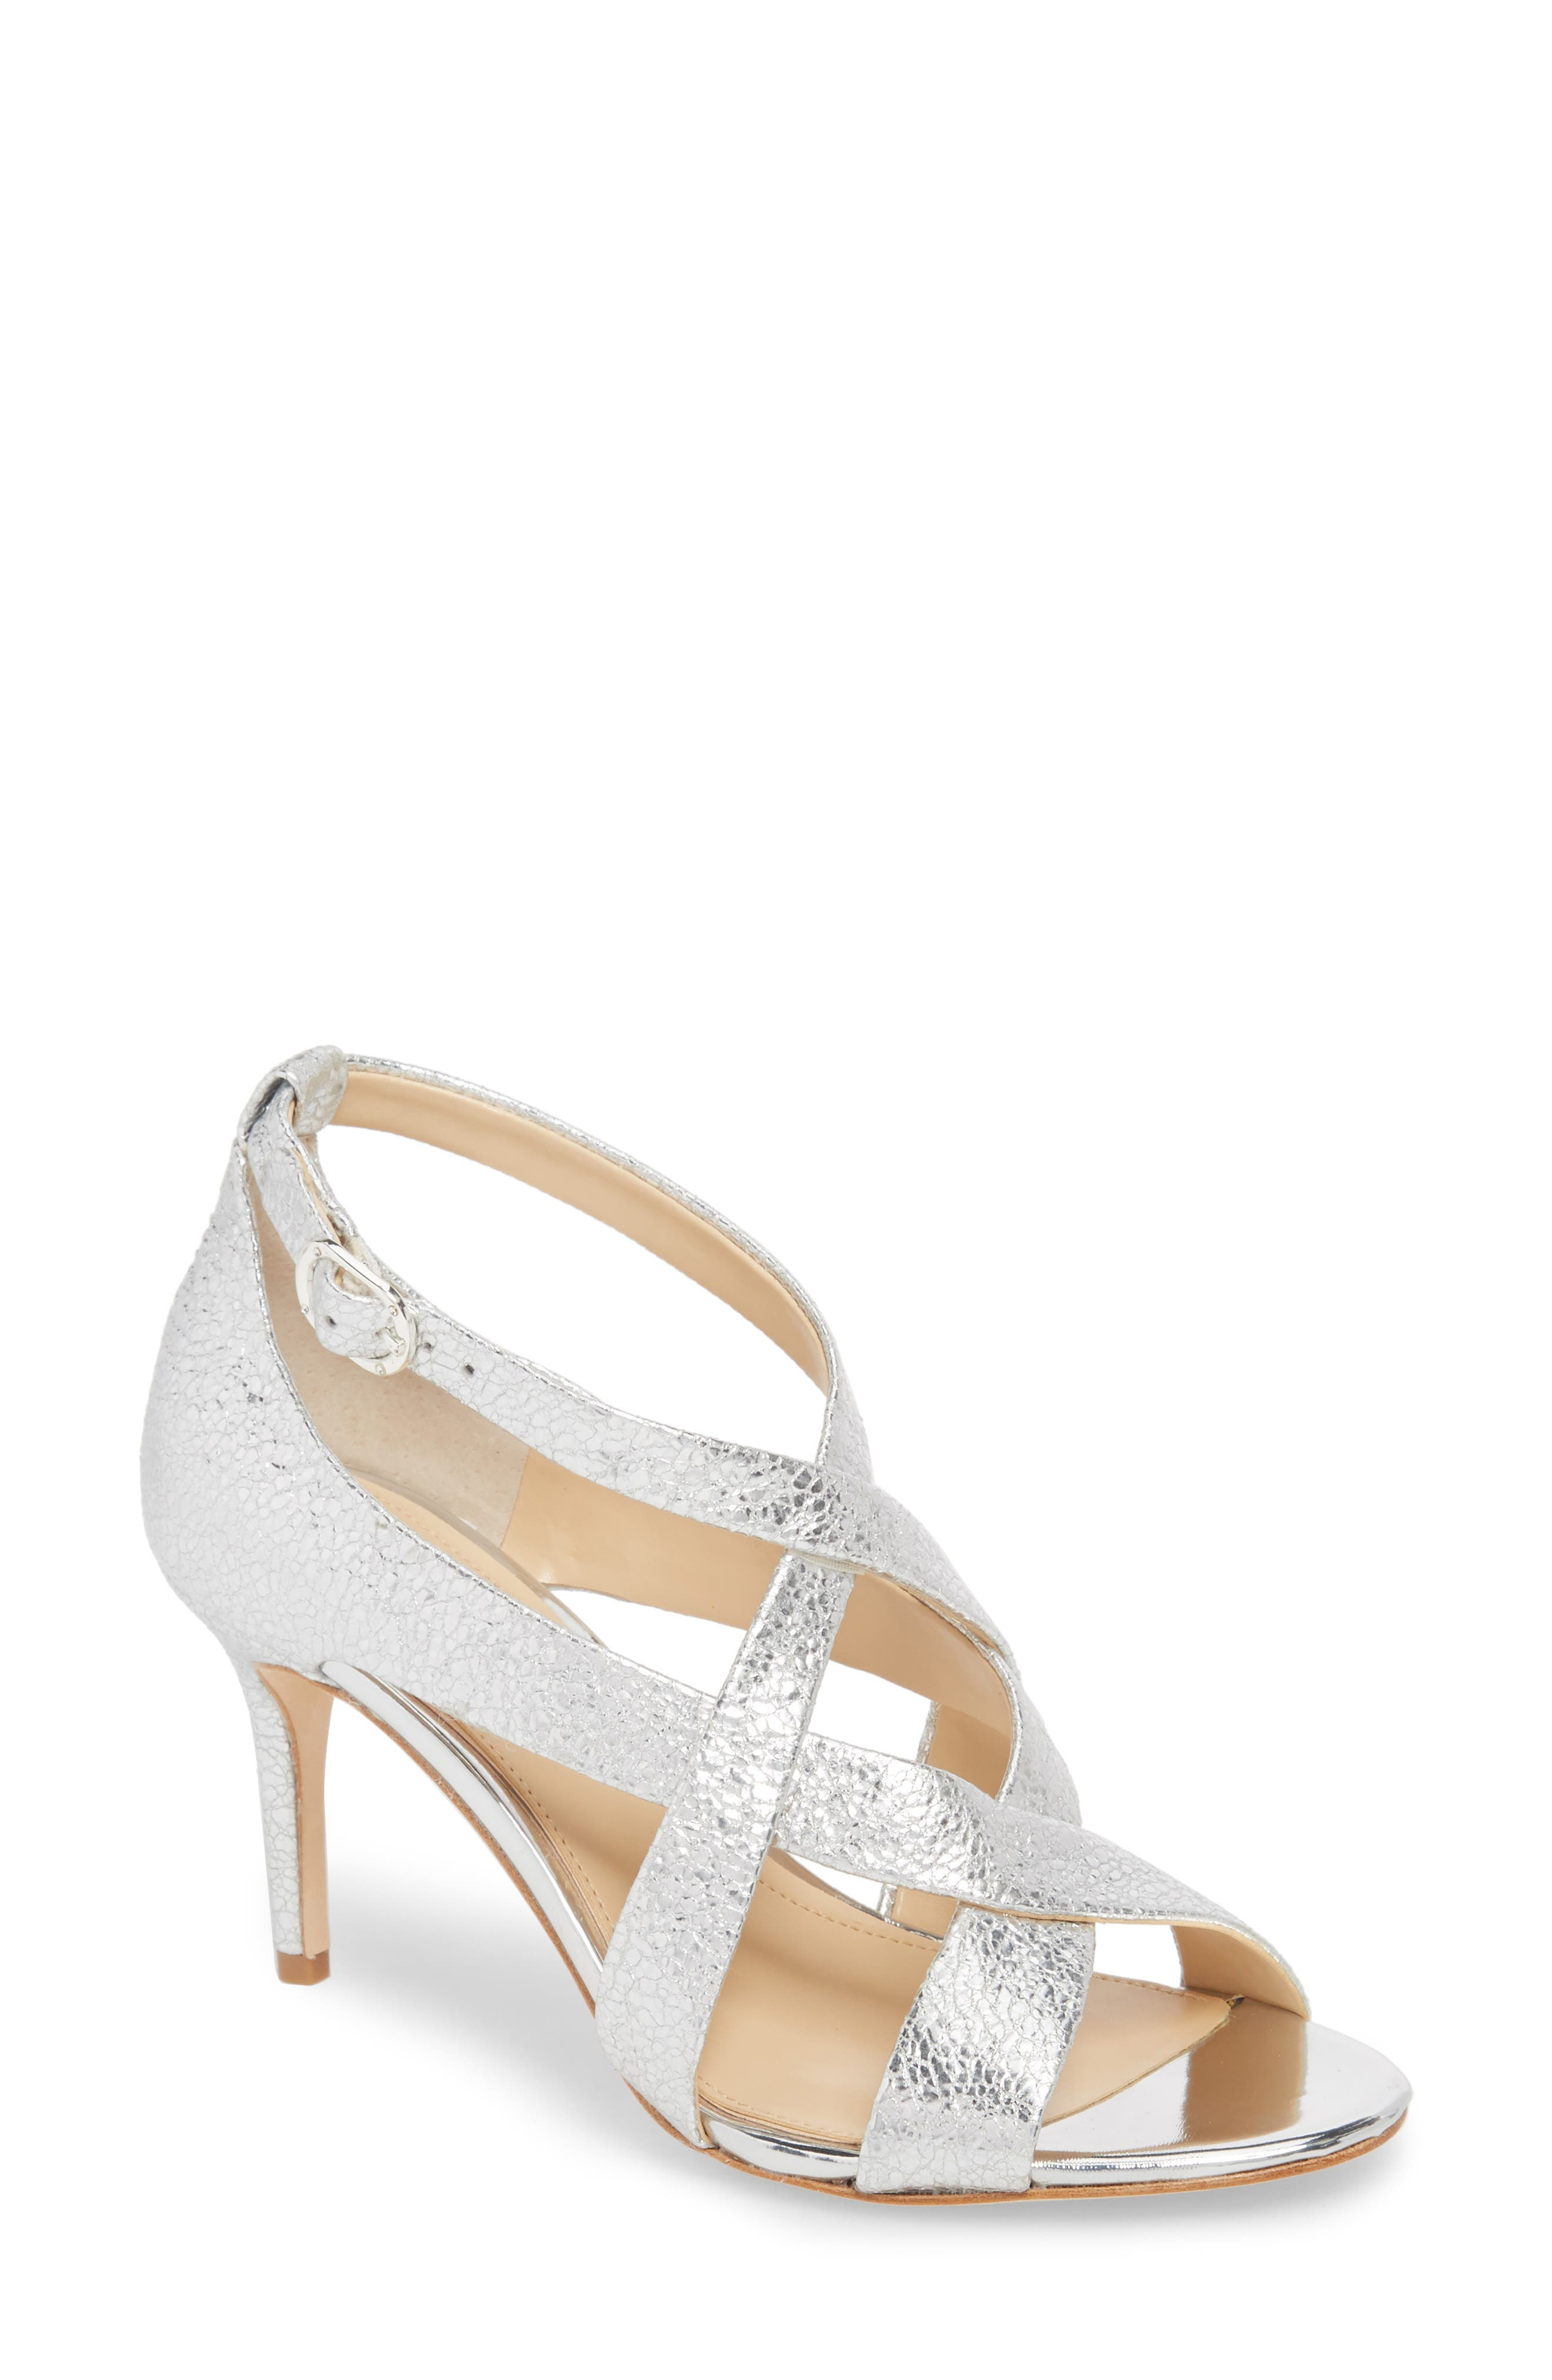 Imagine By Vince Camuto Paill Sandal- Metallic